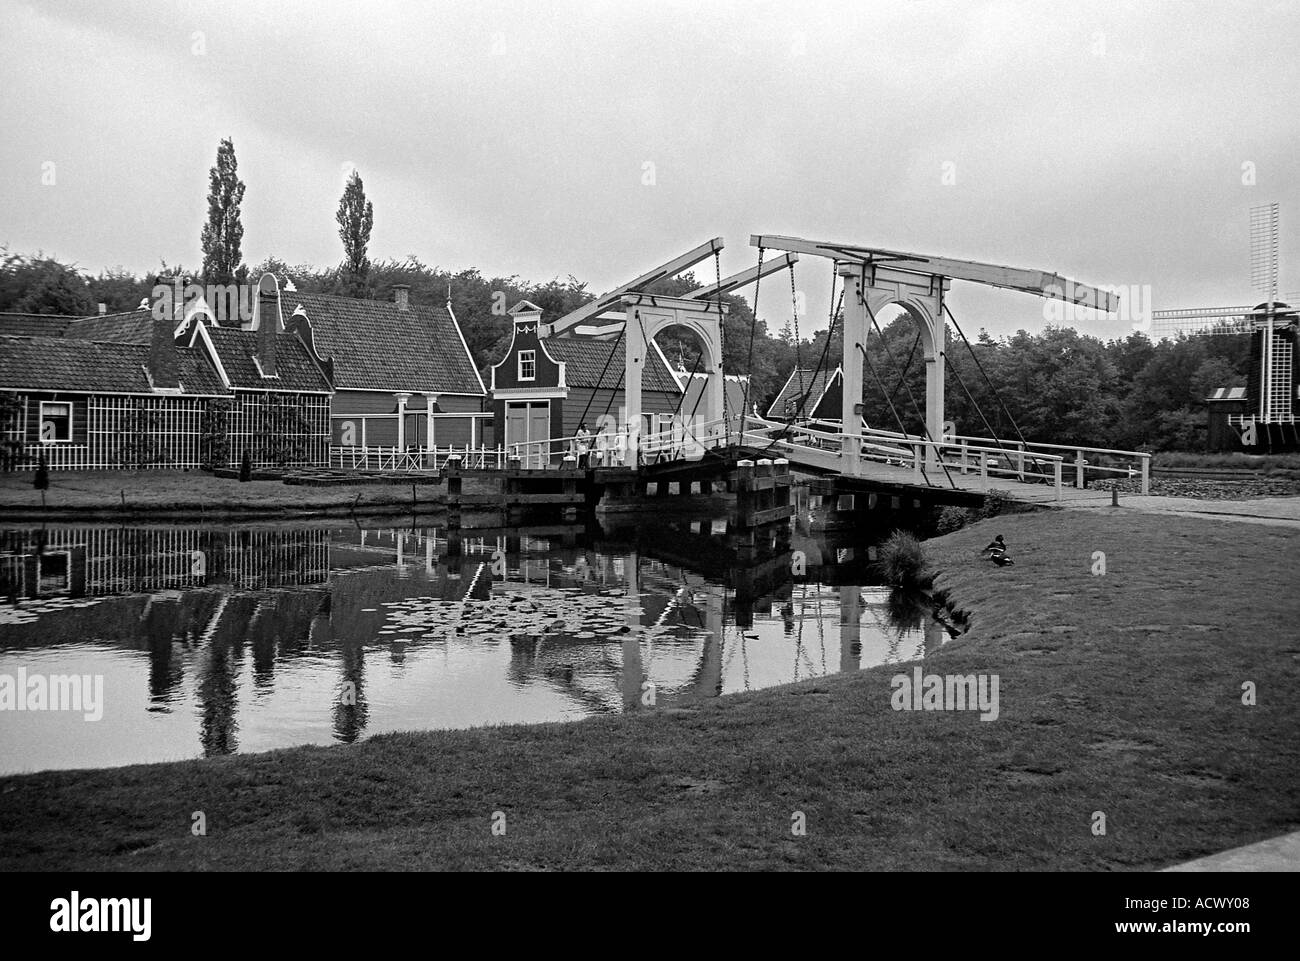 Typical classical scene in Holland in an open air museum with counter balanced bridge canal and old wooden houses - Stock Image